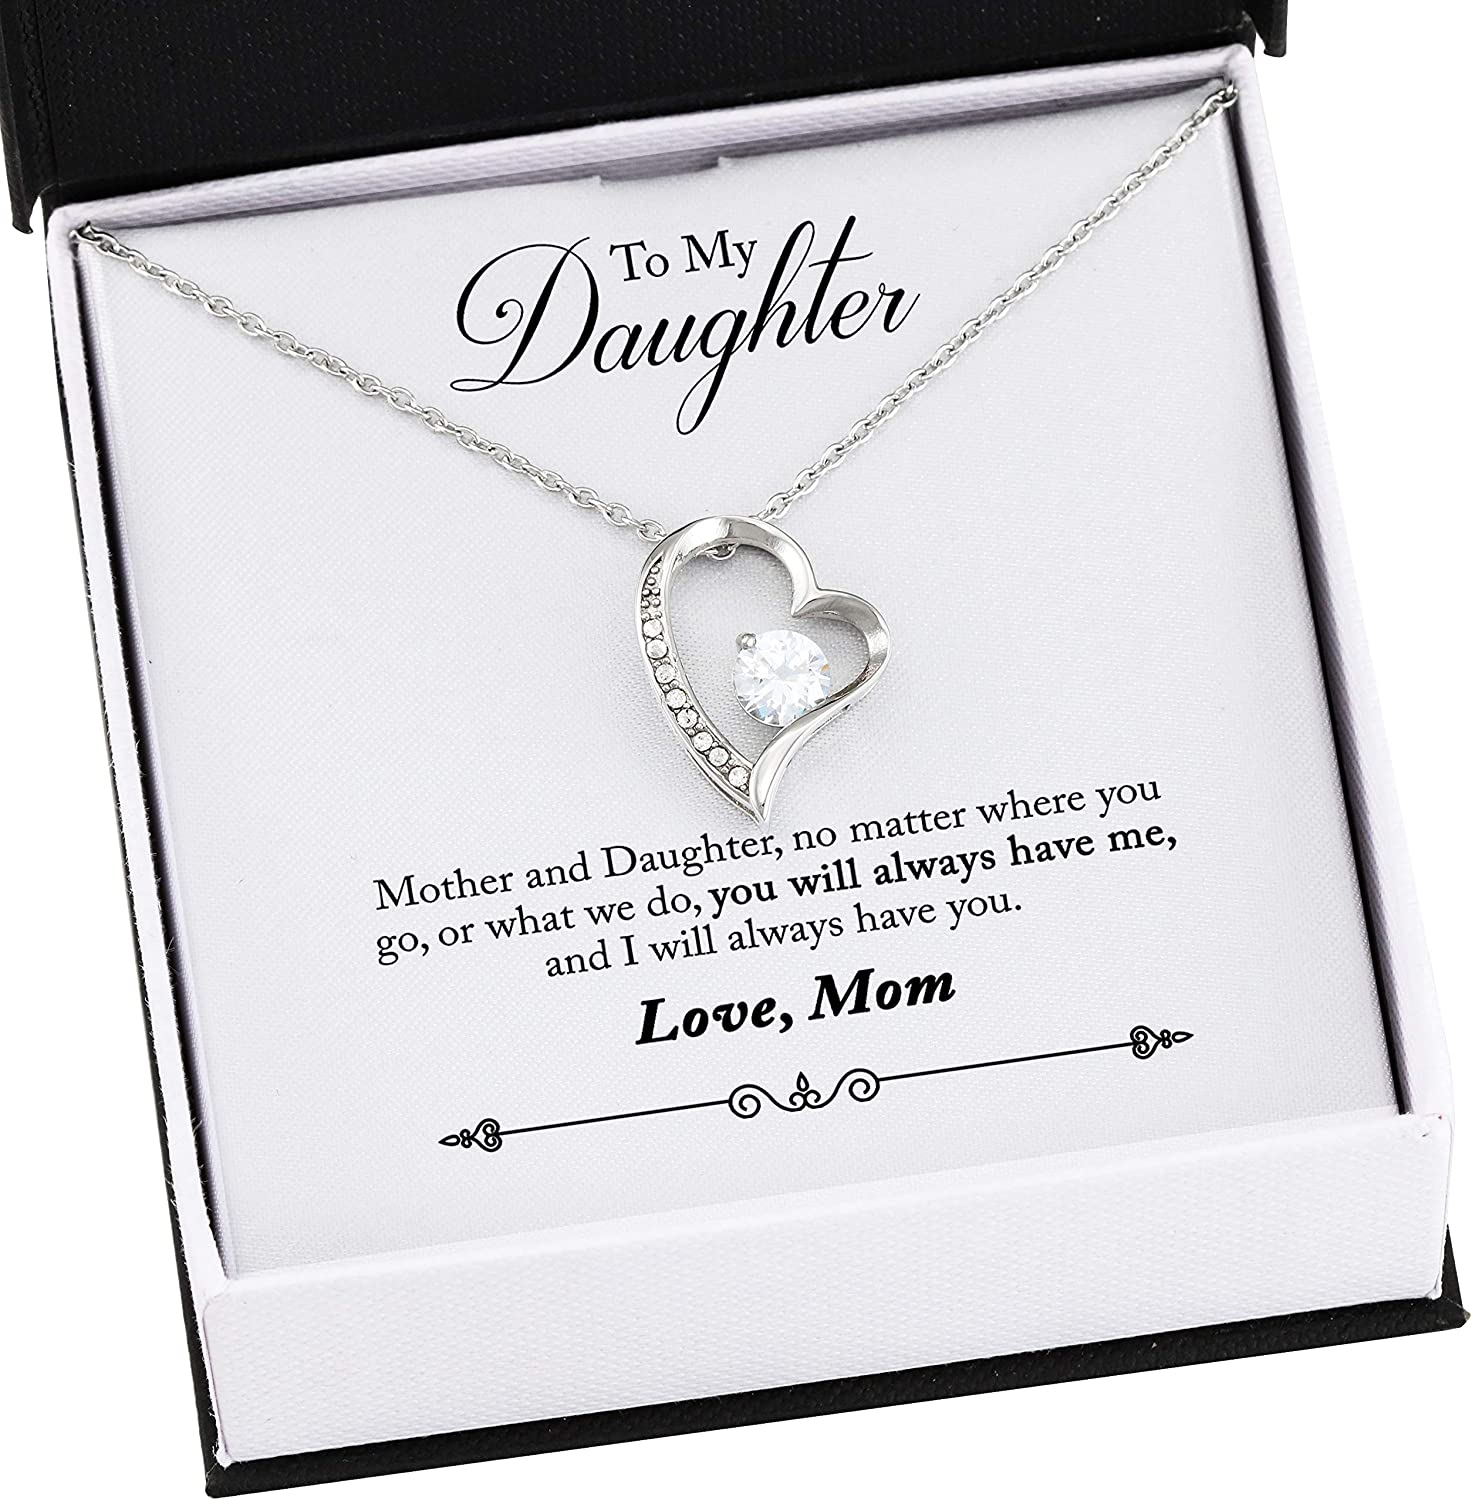 Luong Gia Manh to My Daughter Mother and Daughter No Matter Where You Go Or What We Do You Will Always Have Me and I Will Always Have You Custom Name Forever Love Necklace